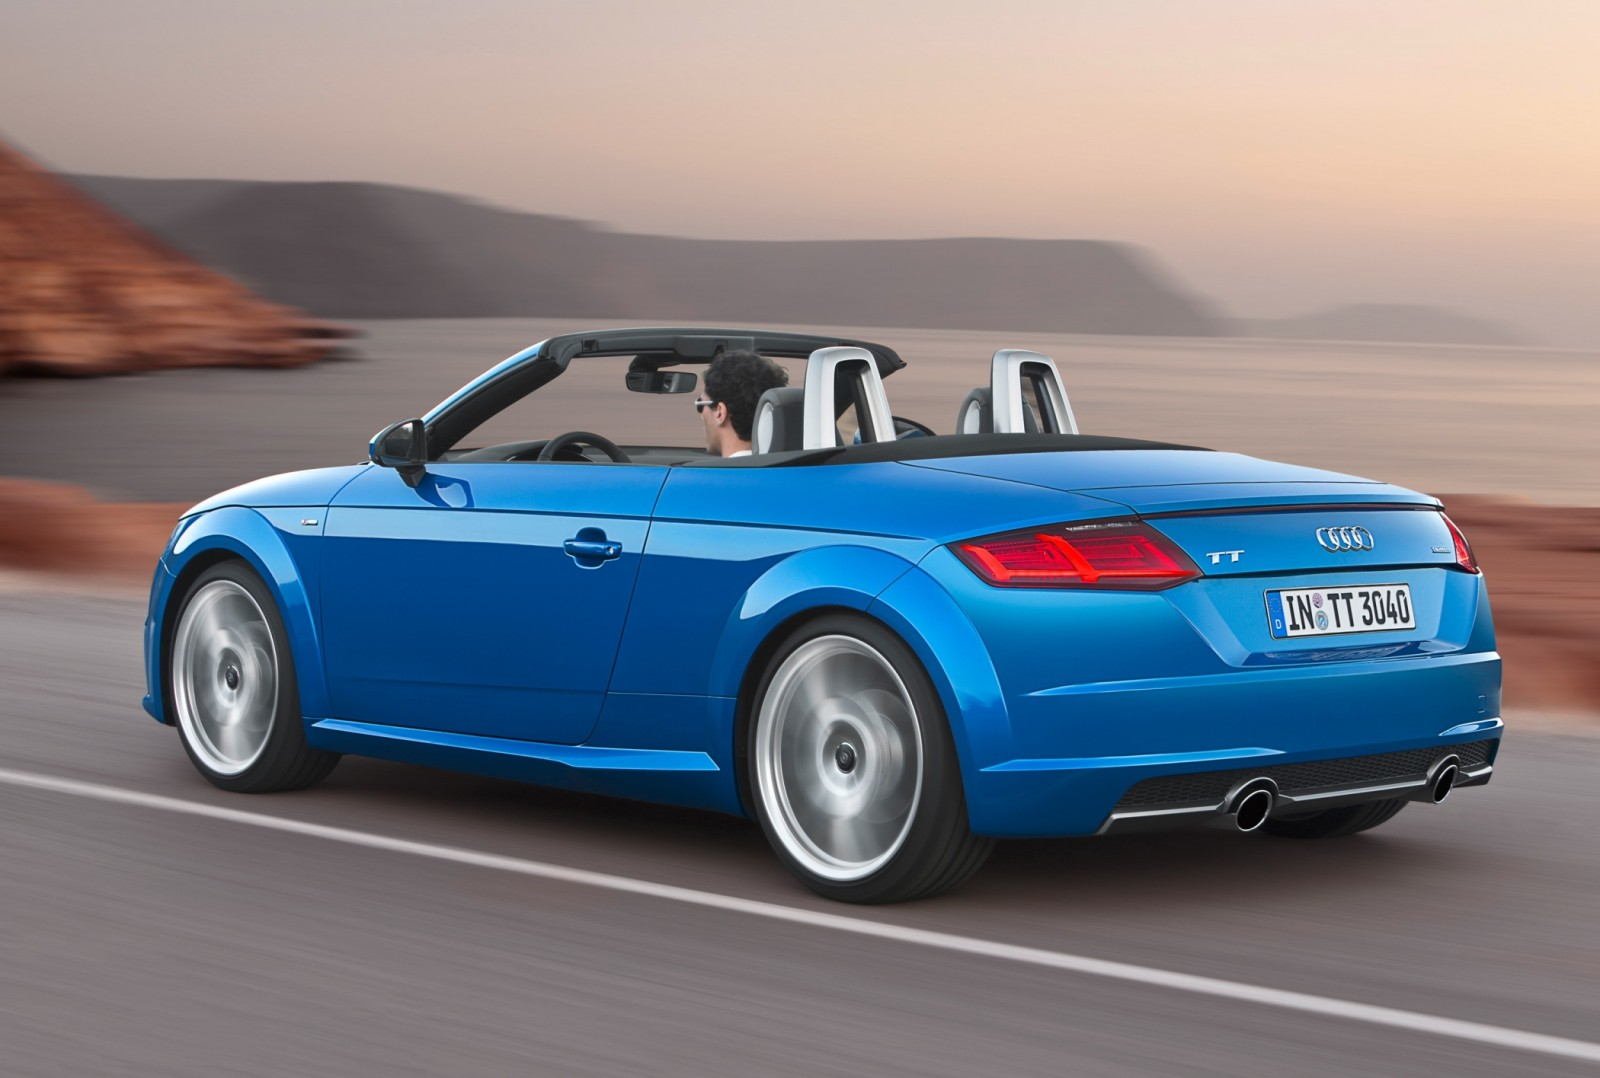 2015 Audi TT and TTS Roadster Revealed Before Paris Show 11